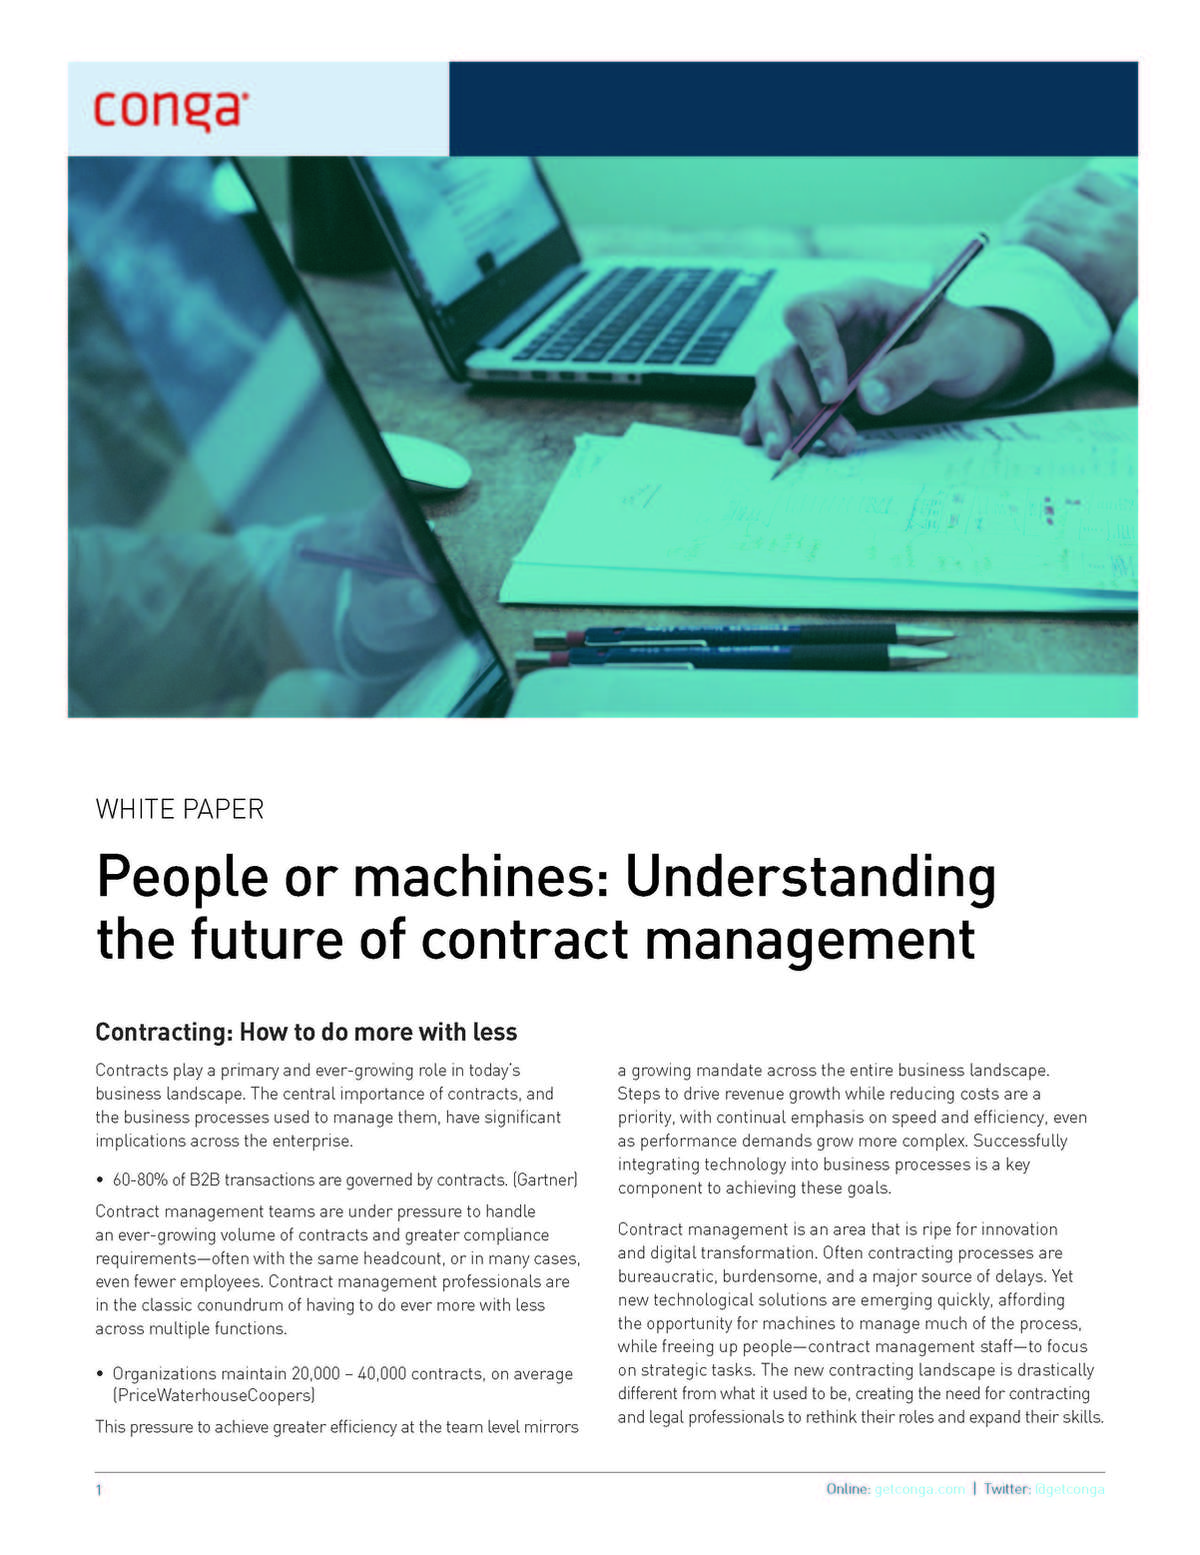 People or Machines: The Future of Contract Management